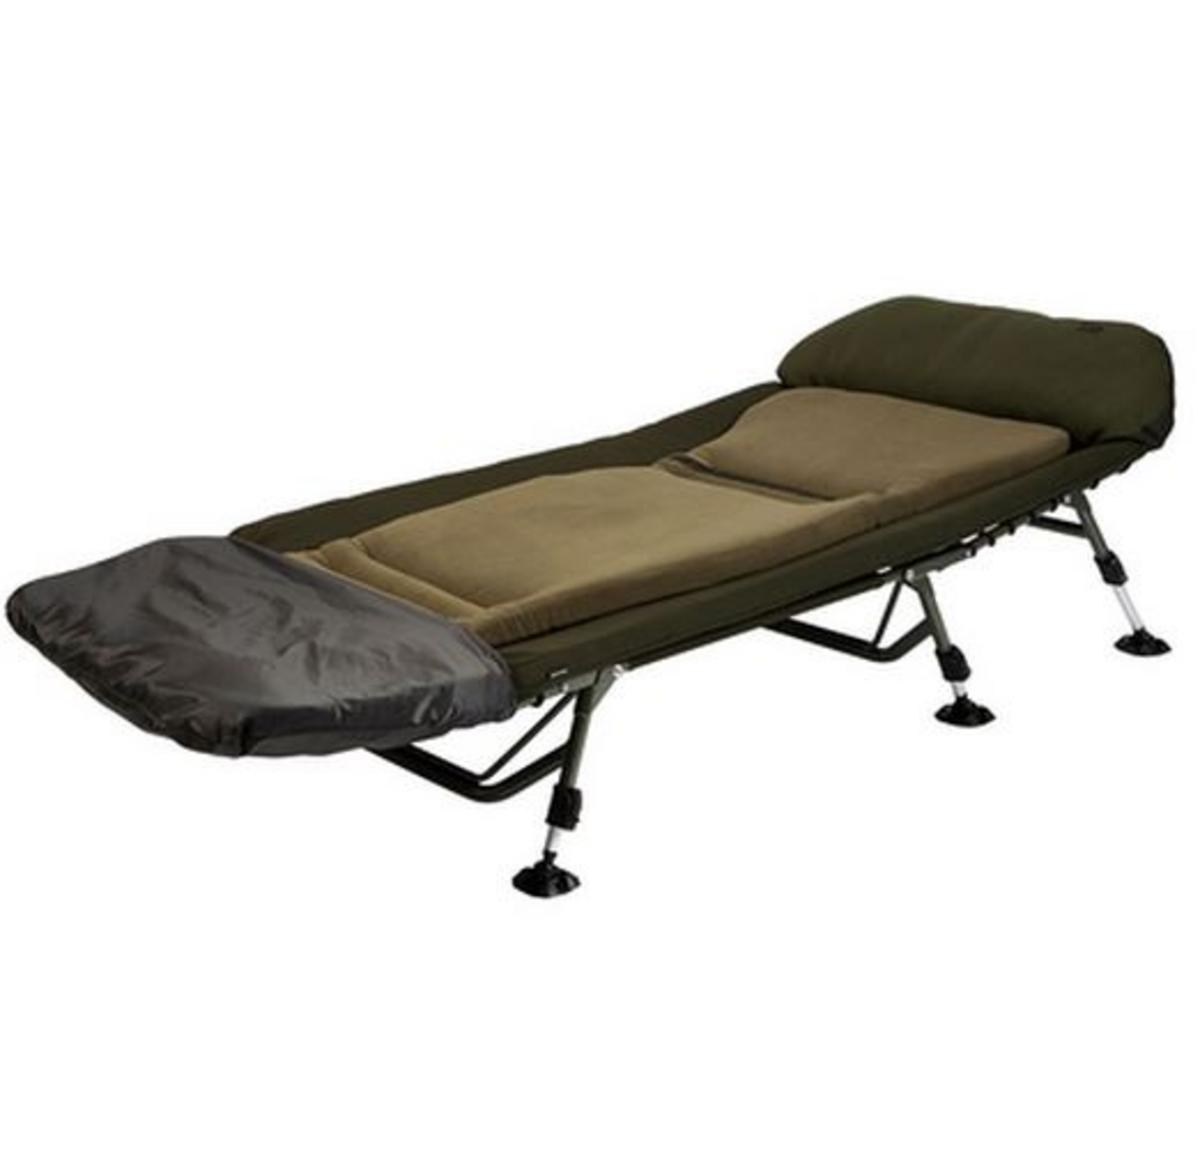 daiwa fishing chair inflatable bubble uk new infinity plateau bedchair dipbc1 chairs and bed